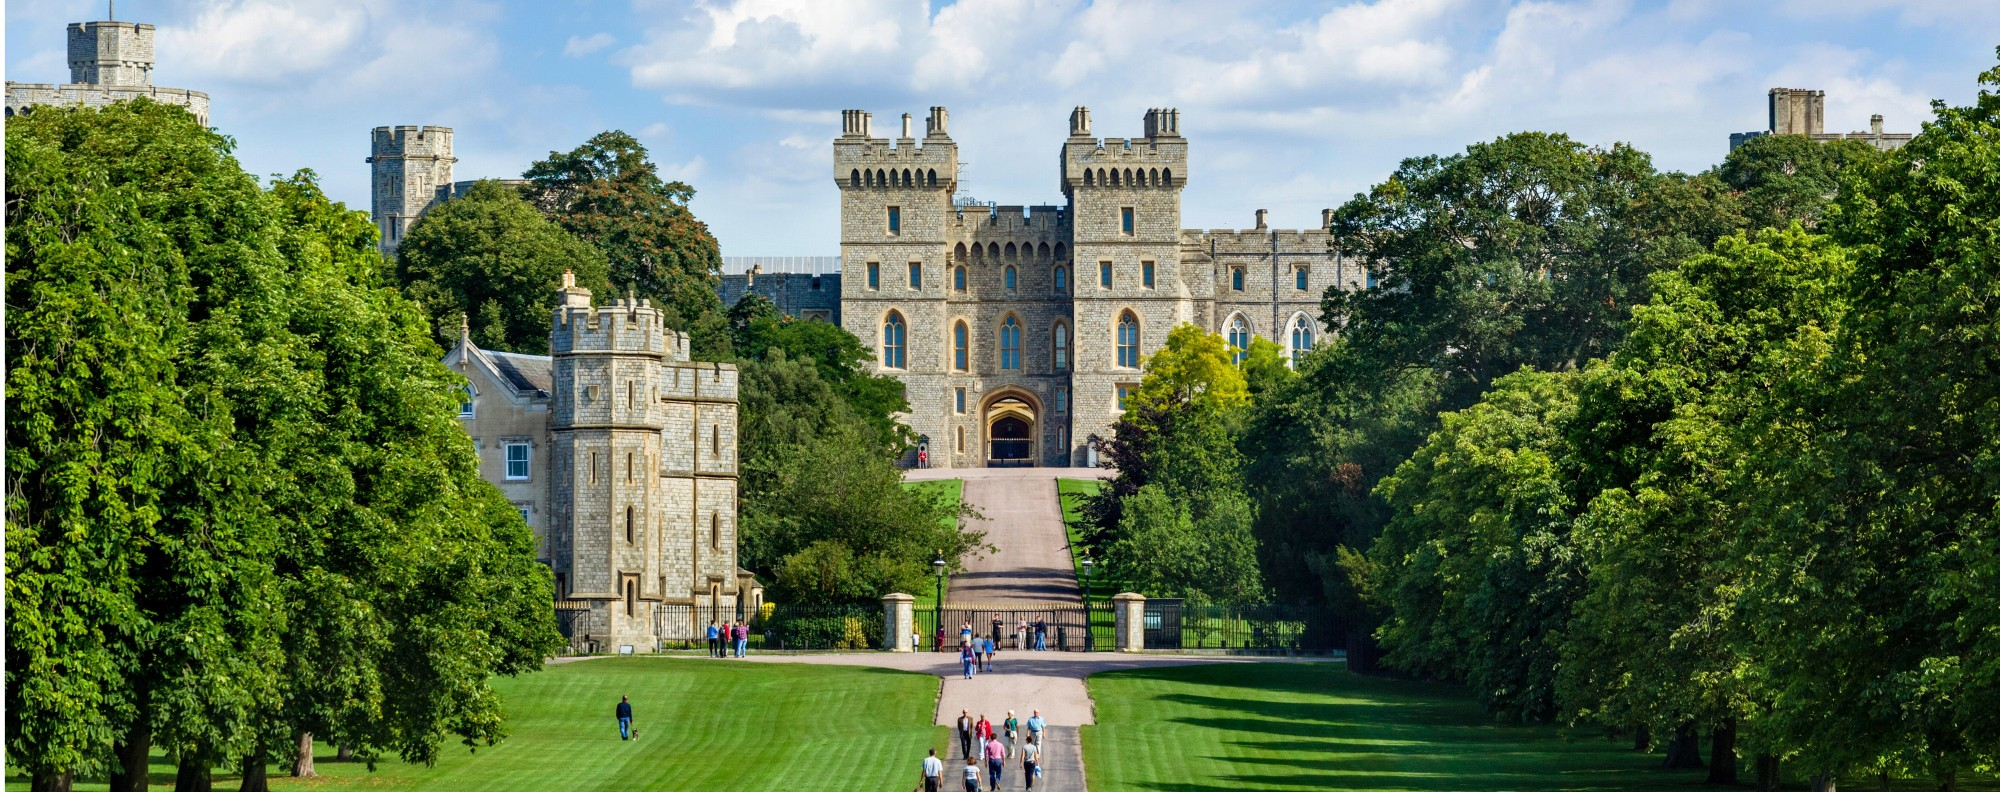 Royal Wedding Venue Windsor The Good Bad And Ugly Sides To A Visit Post Magazine South